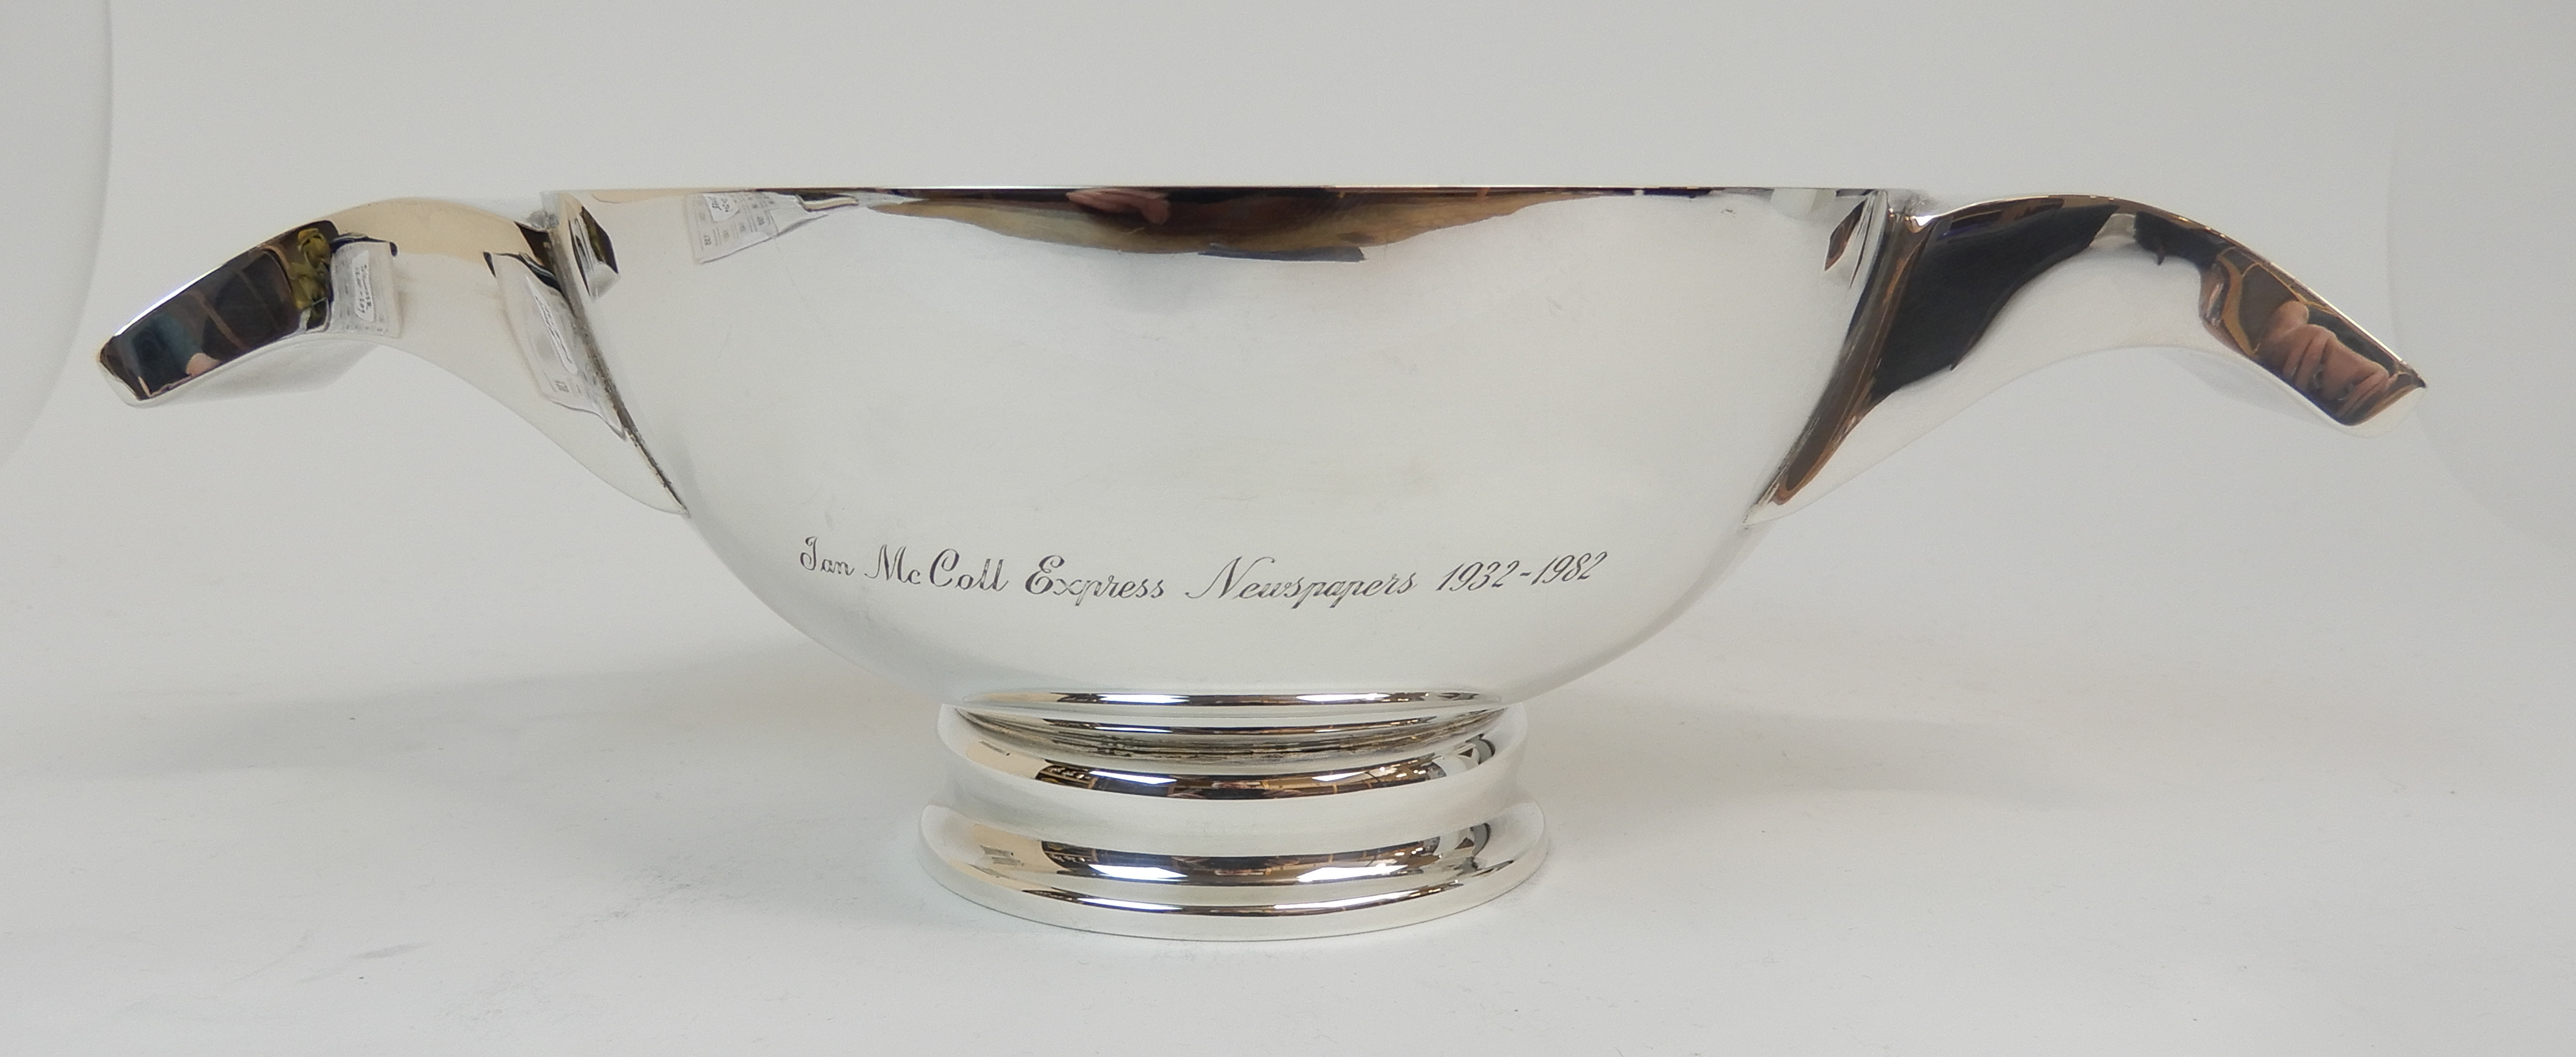 Lot 126 - A SILVER QUAICH by J B Chatterley & Sons Limited, Edinburgh 1979, of circular form with down